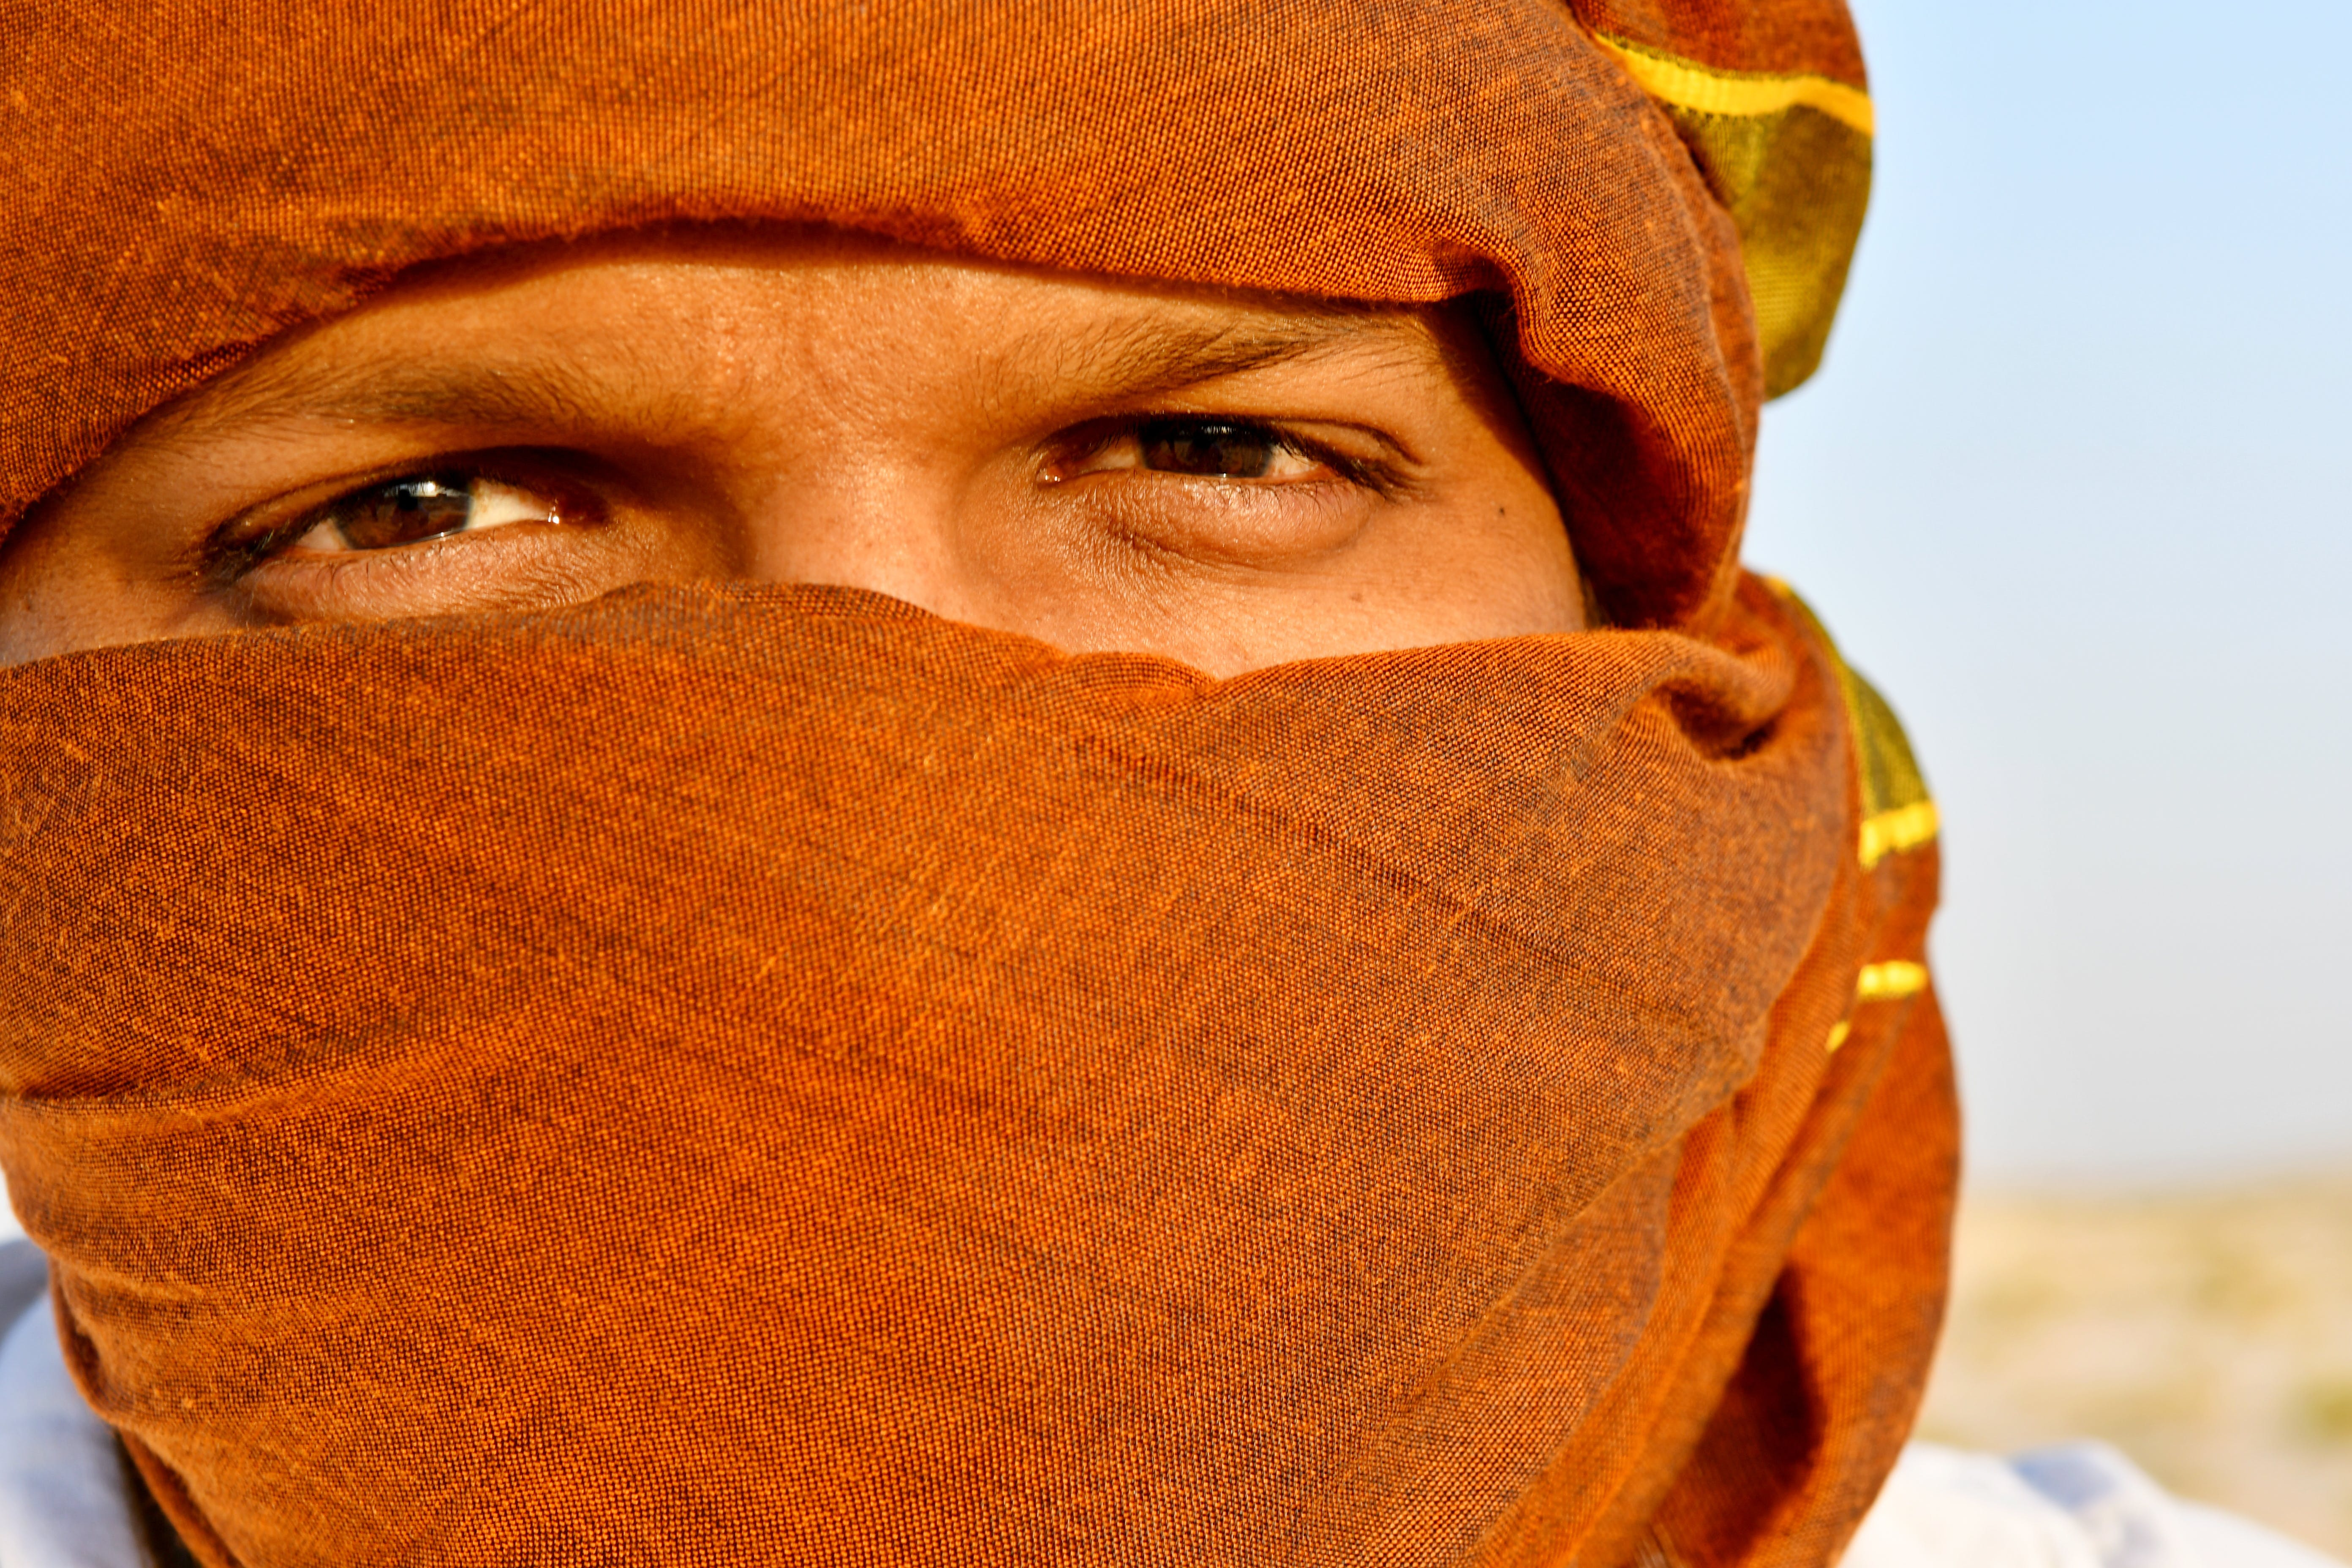 Man Cover Face Using Scarf